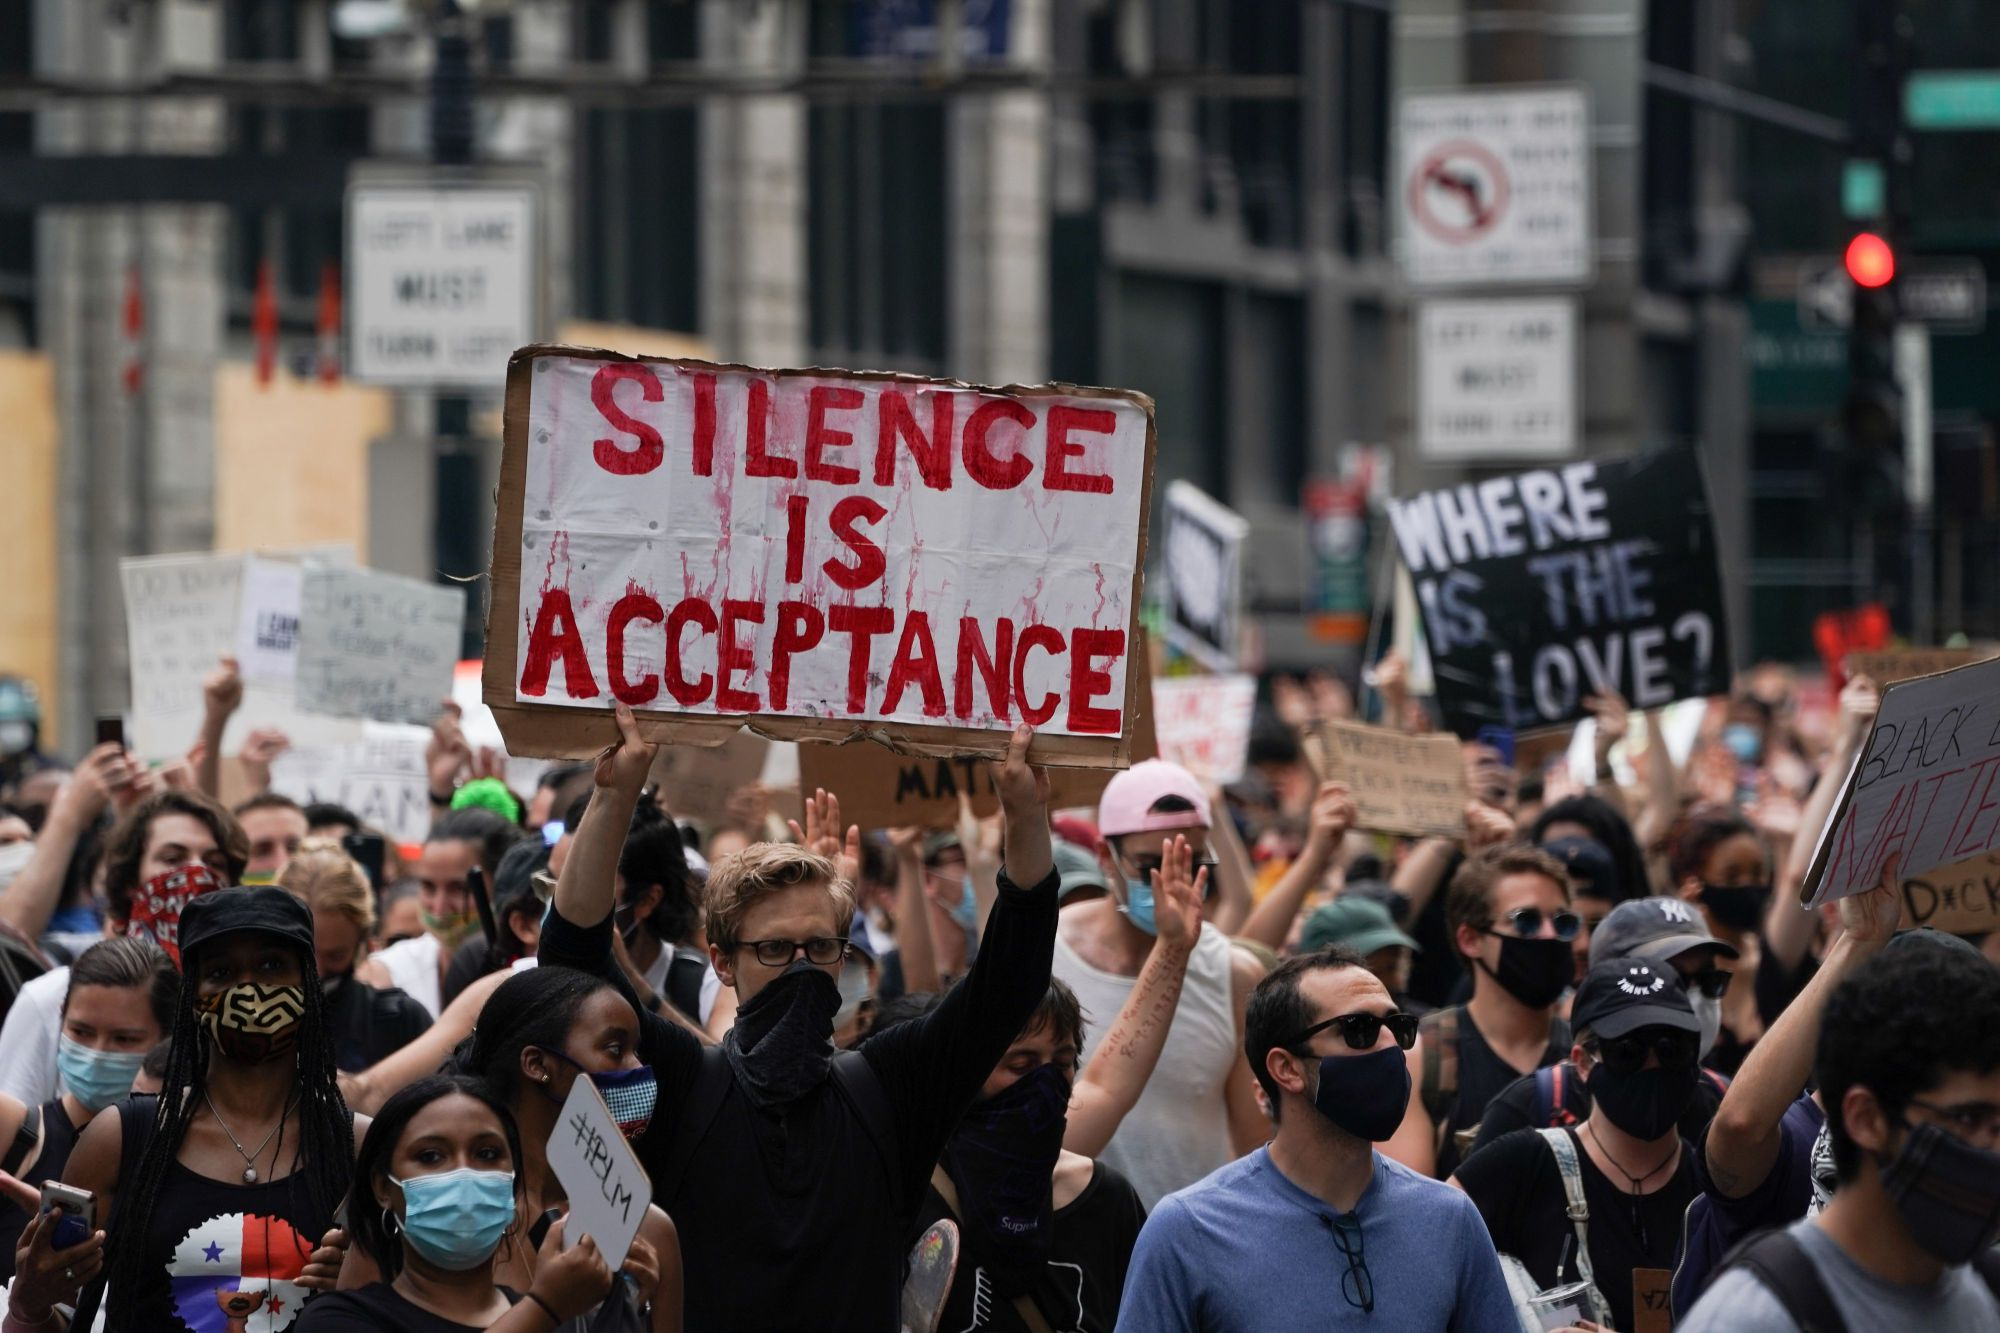 Protesters walk through traffic in lower Manhattan during a peaceful protest against police brutality and racism, on June 6, 2020, in New York.(BRYAN R. SMITH/AFP via Getty Images)